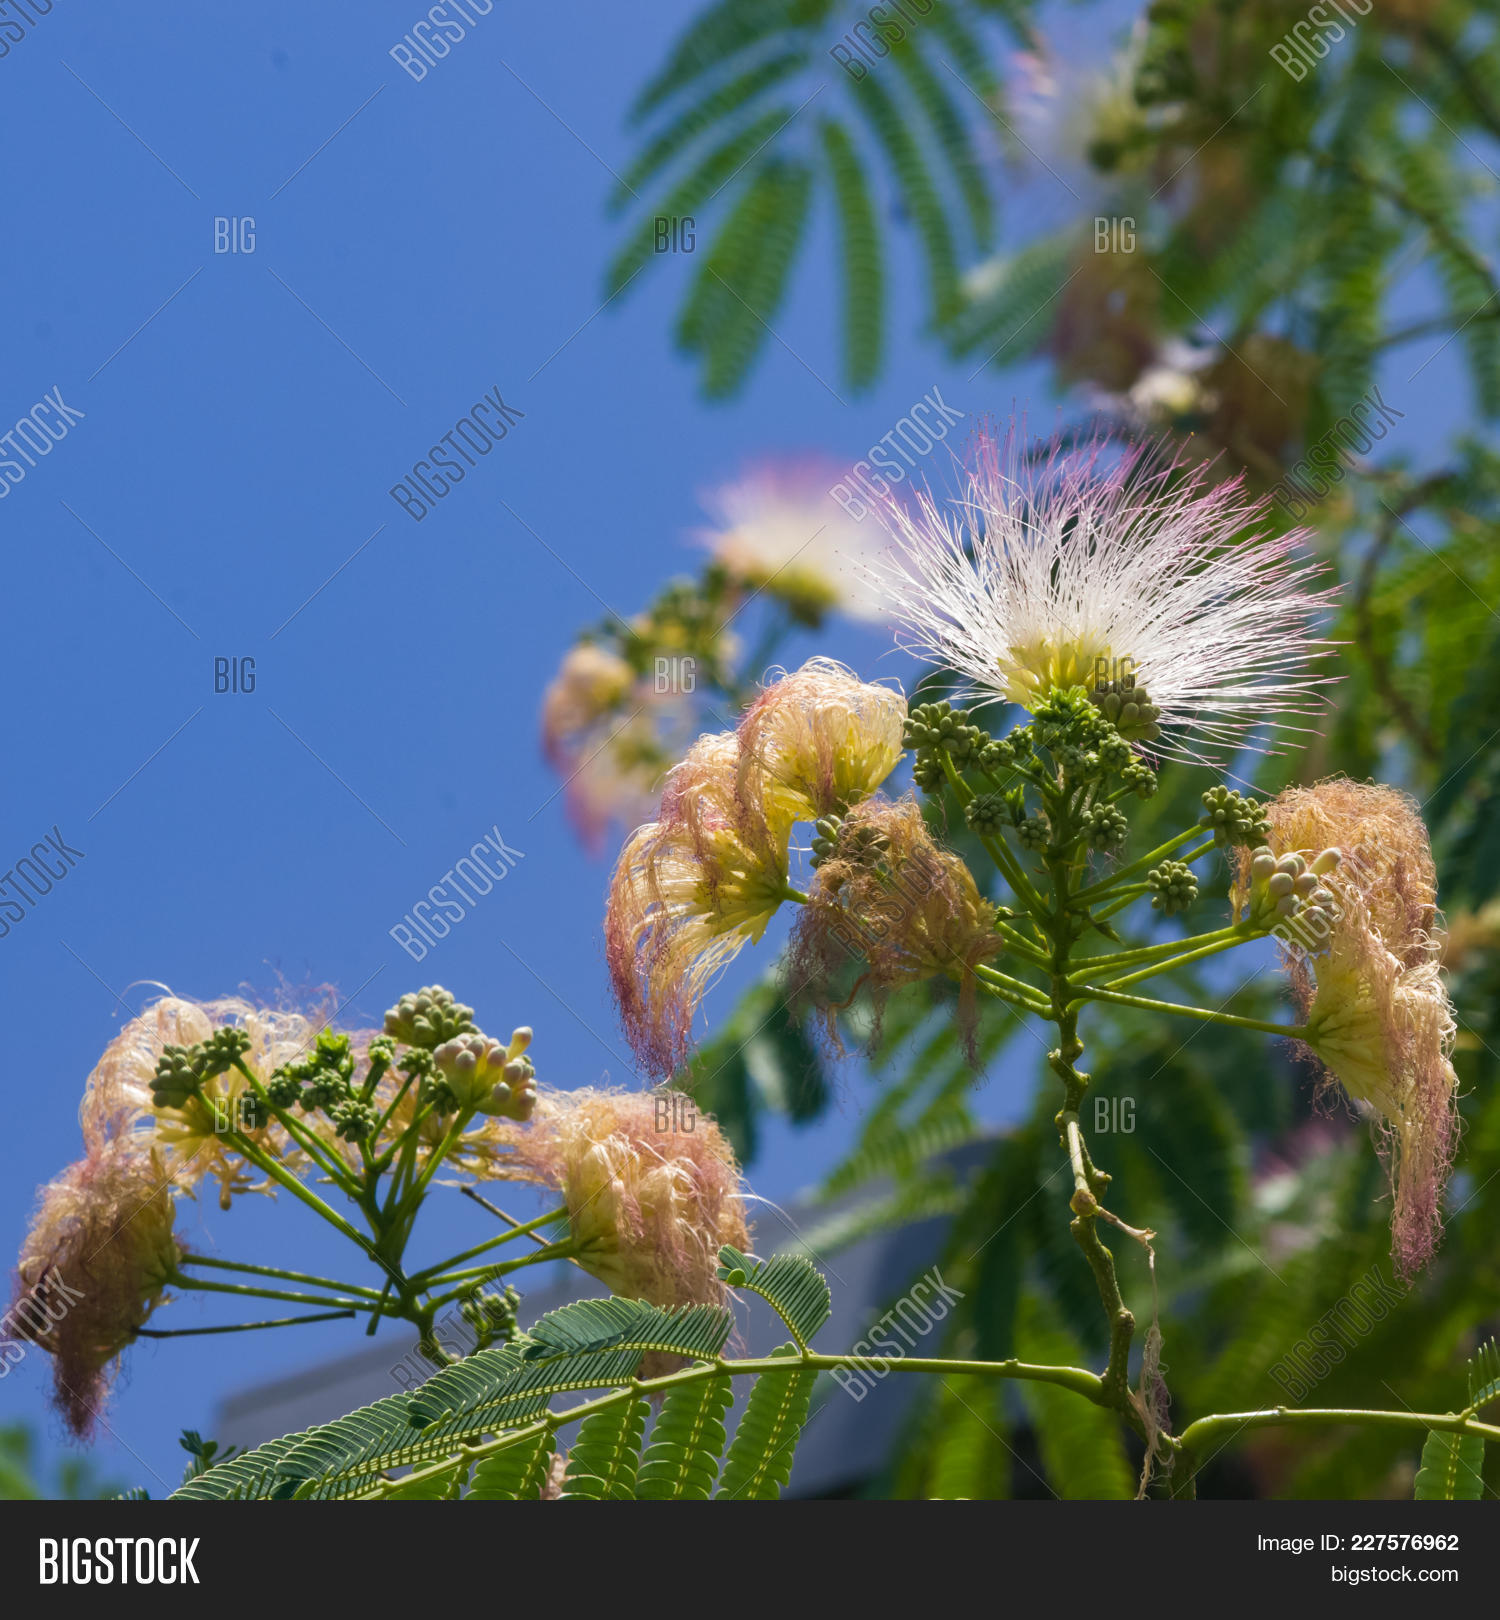 Flowers Buds On Image Photo Free Trial Bigstock